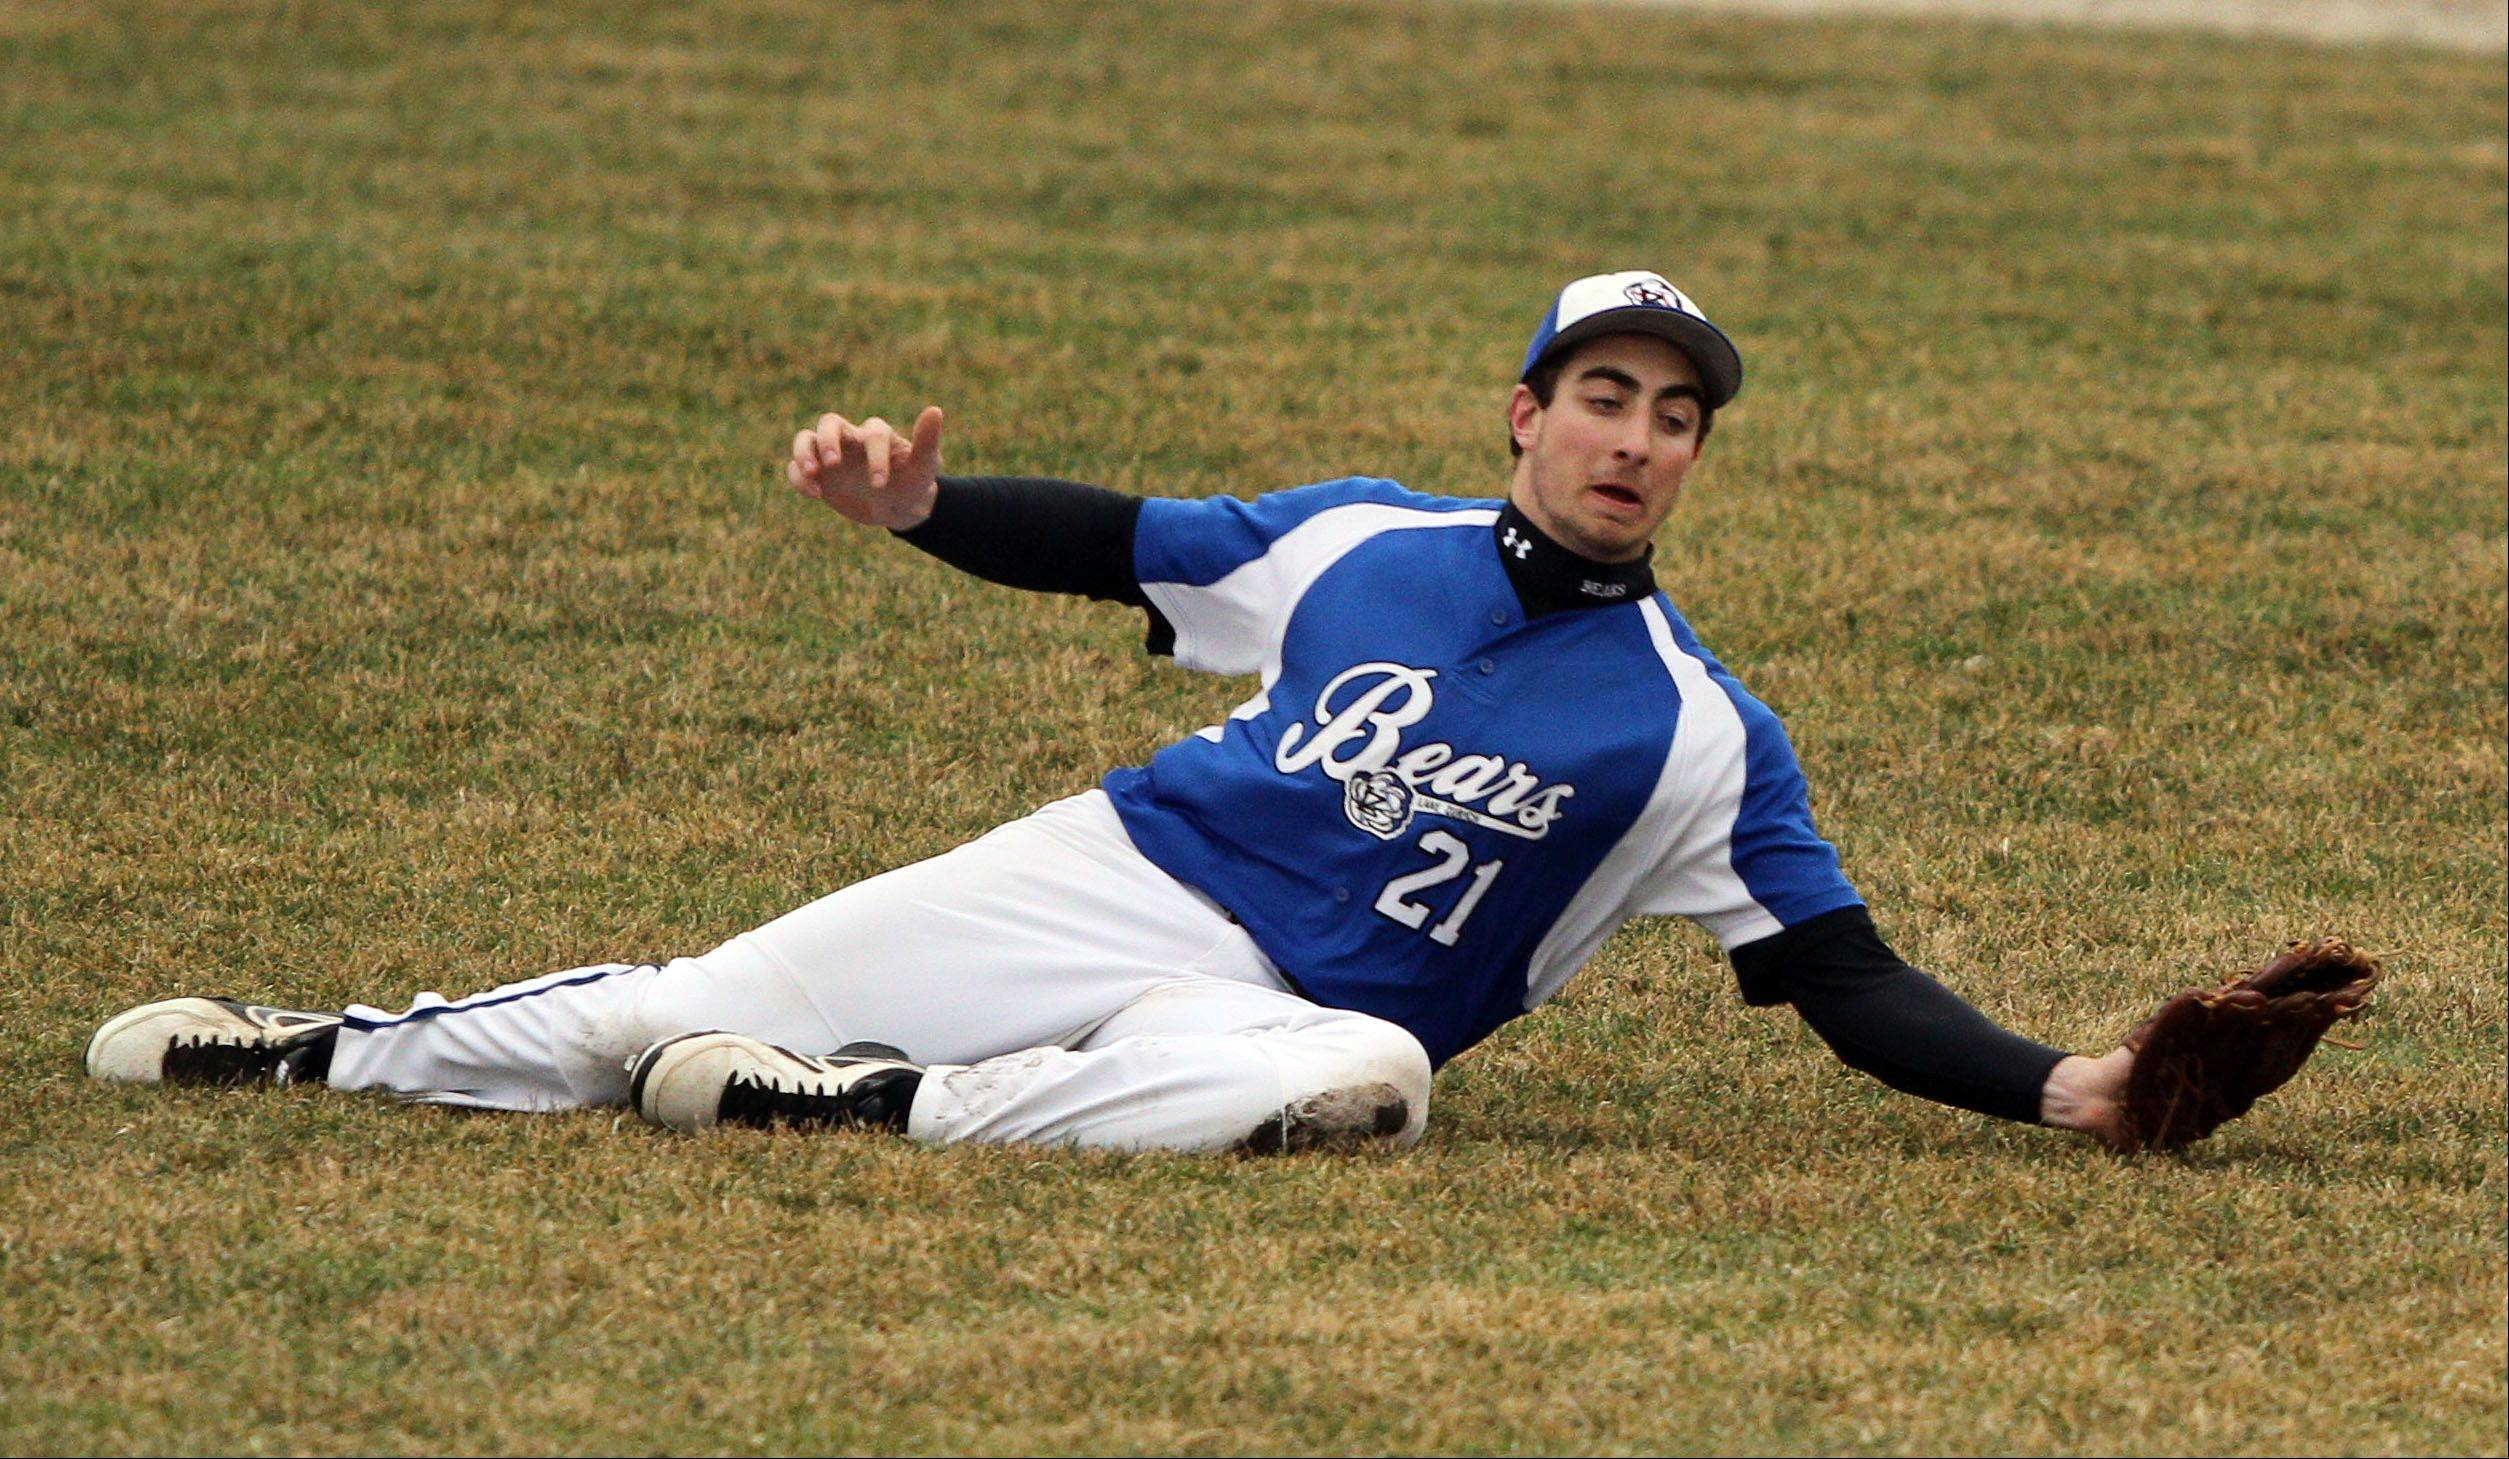 Lake Zurich's Dominic DeMicco makes a diving catch in the outfield Tuesday at Mundelein High School.